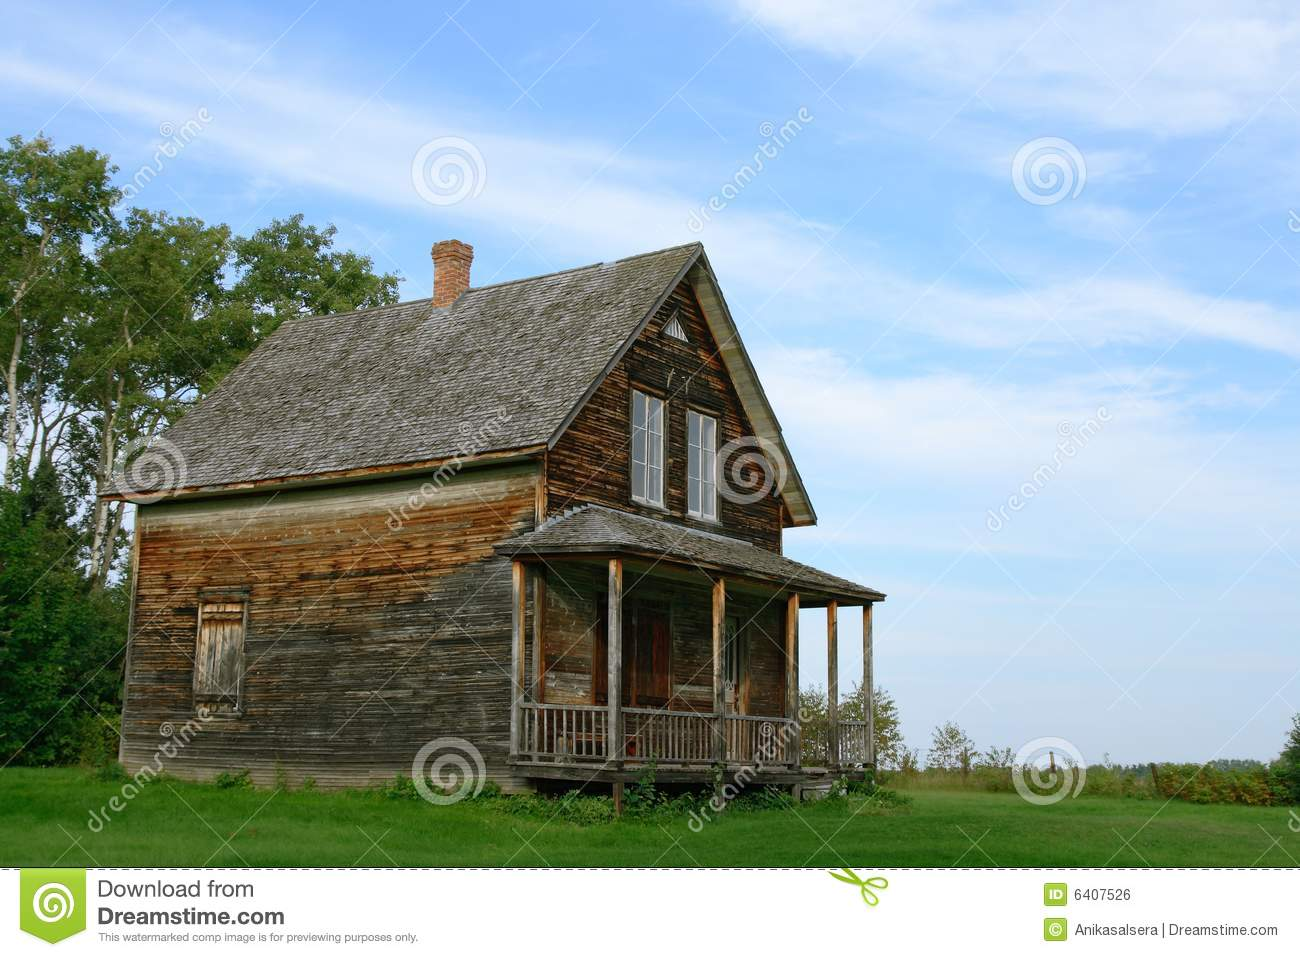 wooden country house photo - 3